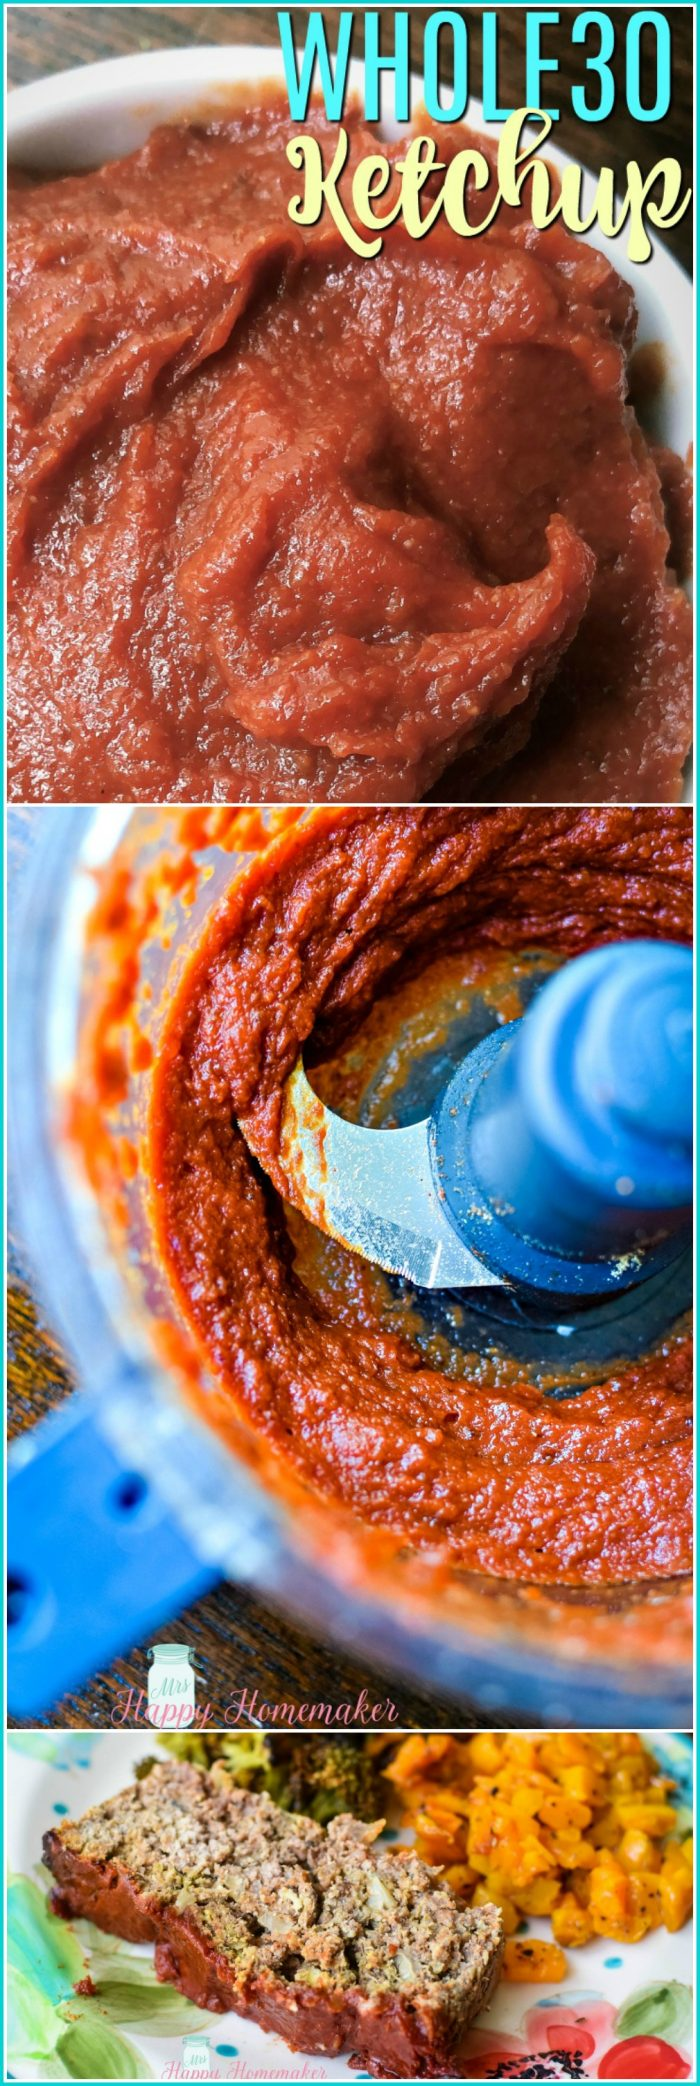 Homemade Whole30 Ketchup | Sugar Free | Paleo